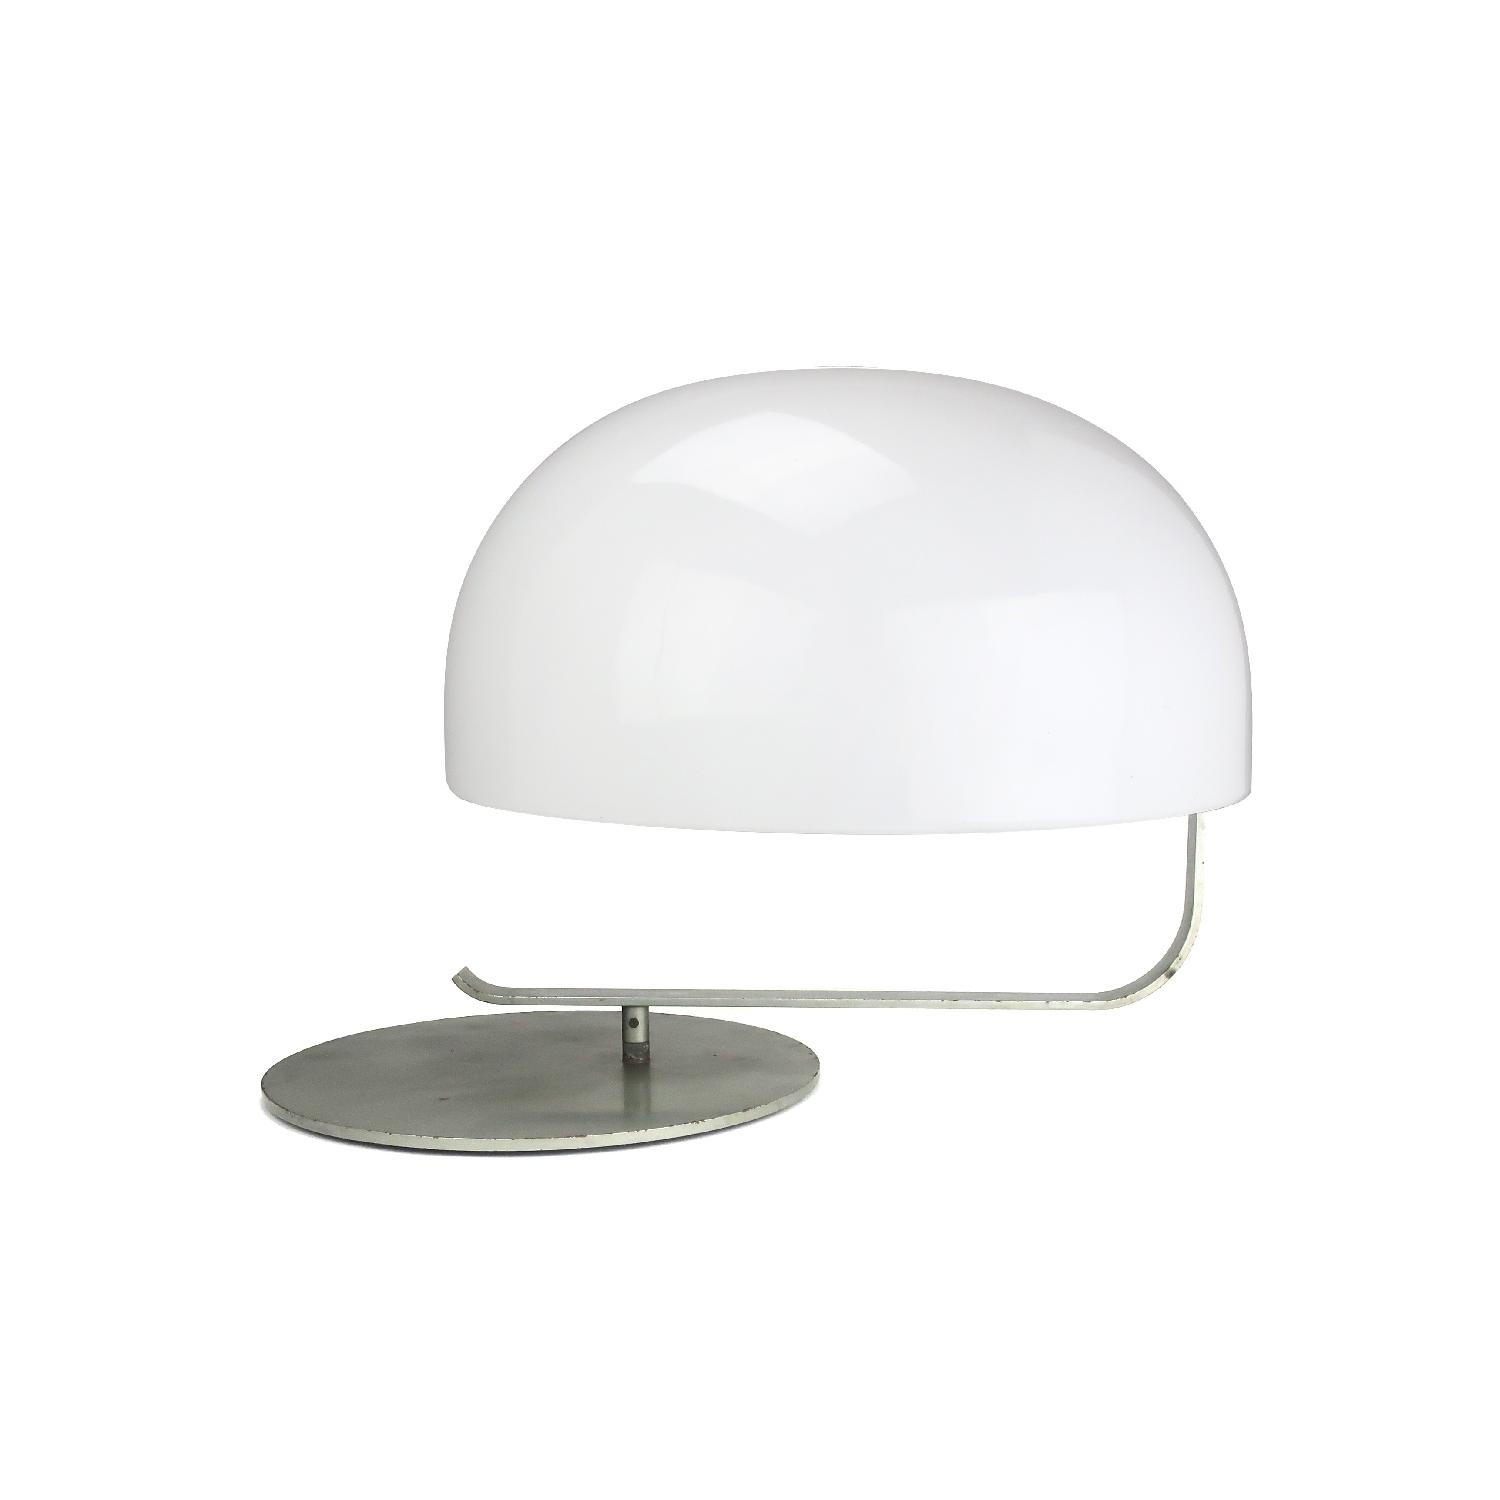 Vintage 1970s Rotating Dome Table Lamp